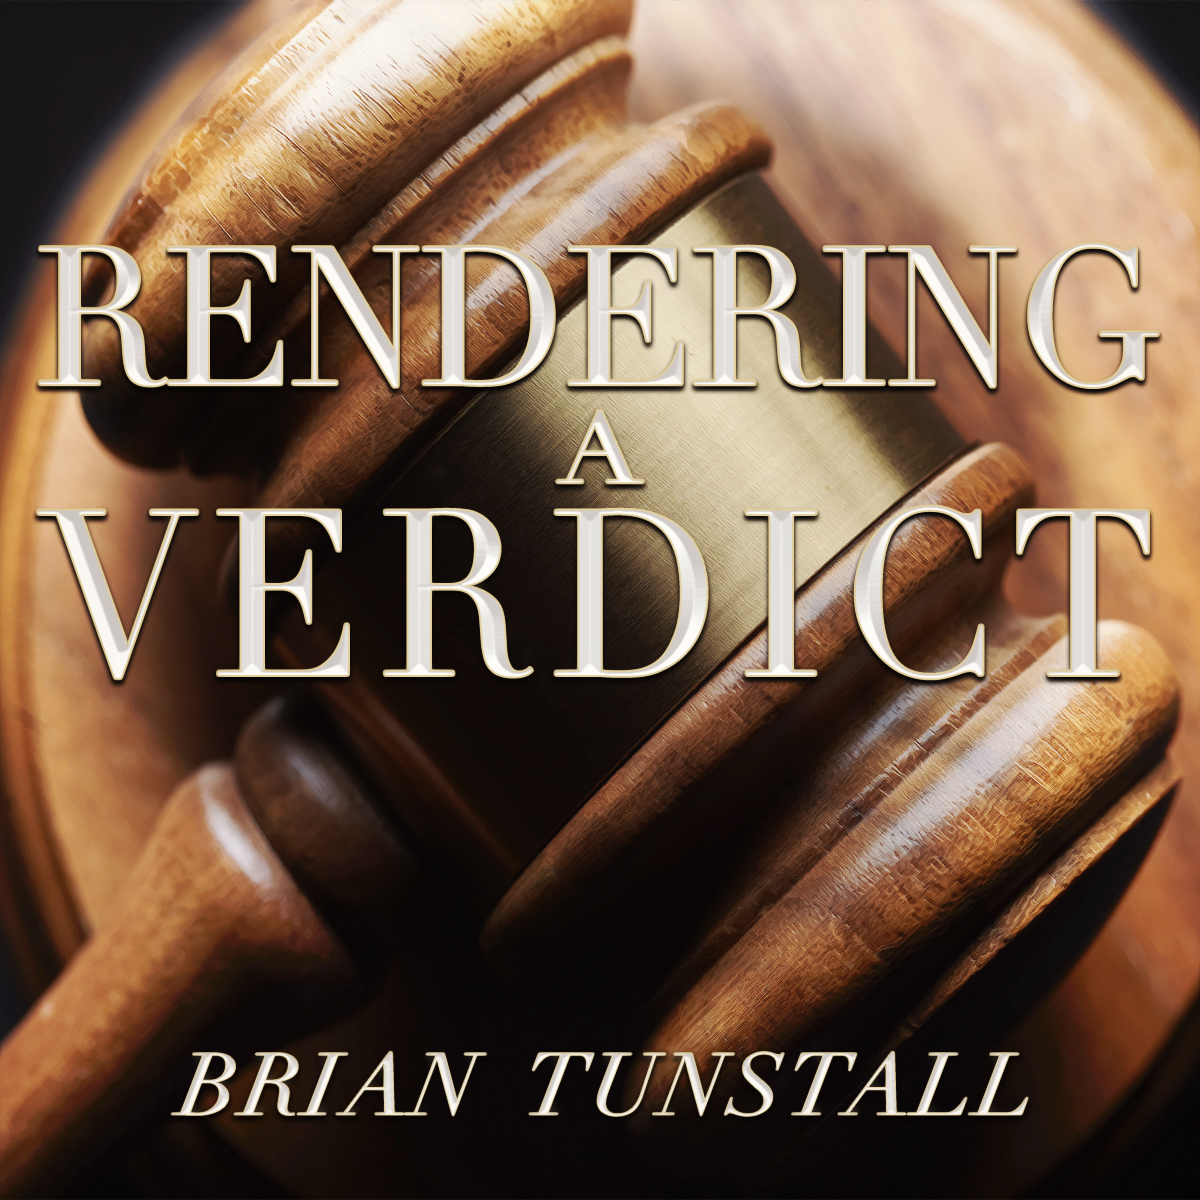 Rendering A Verdict_Cover